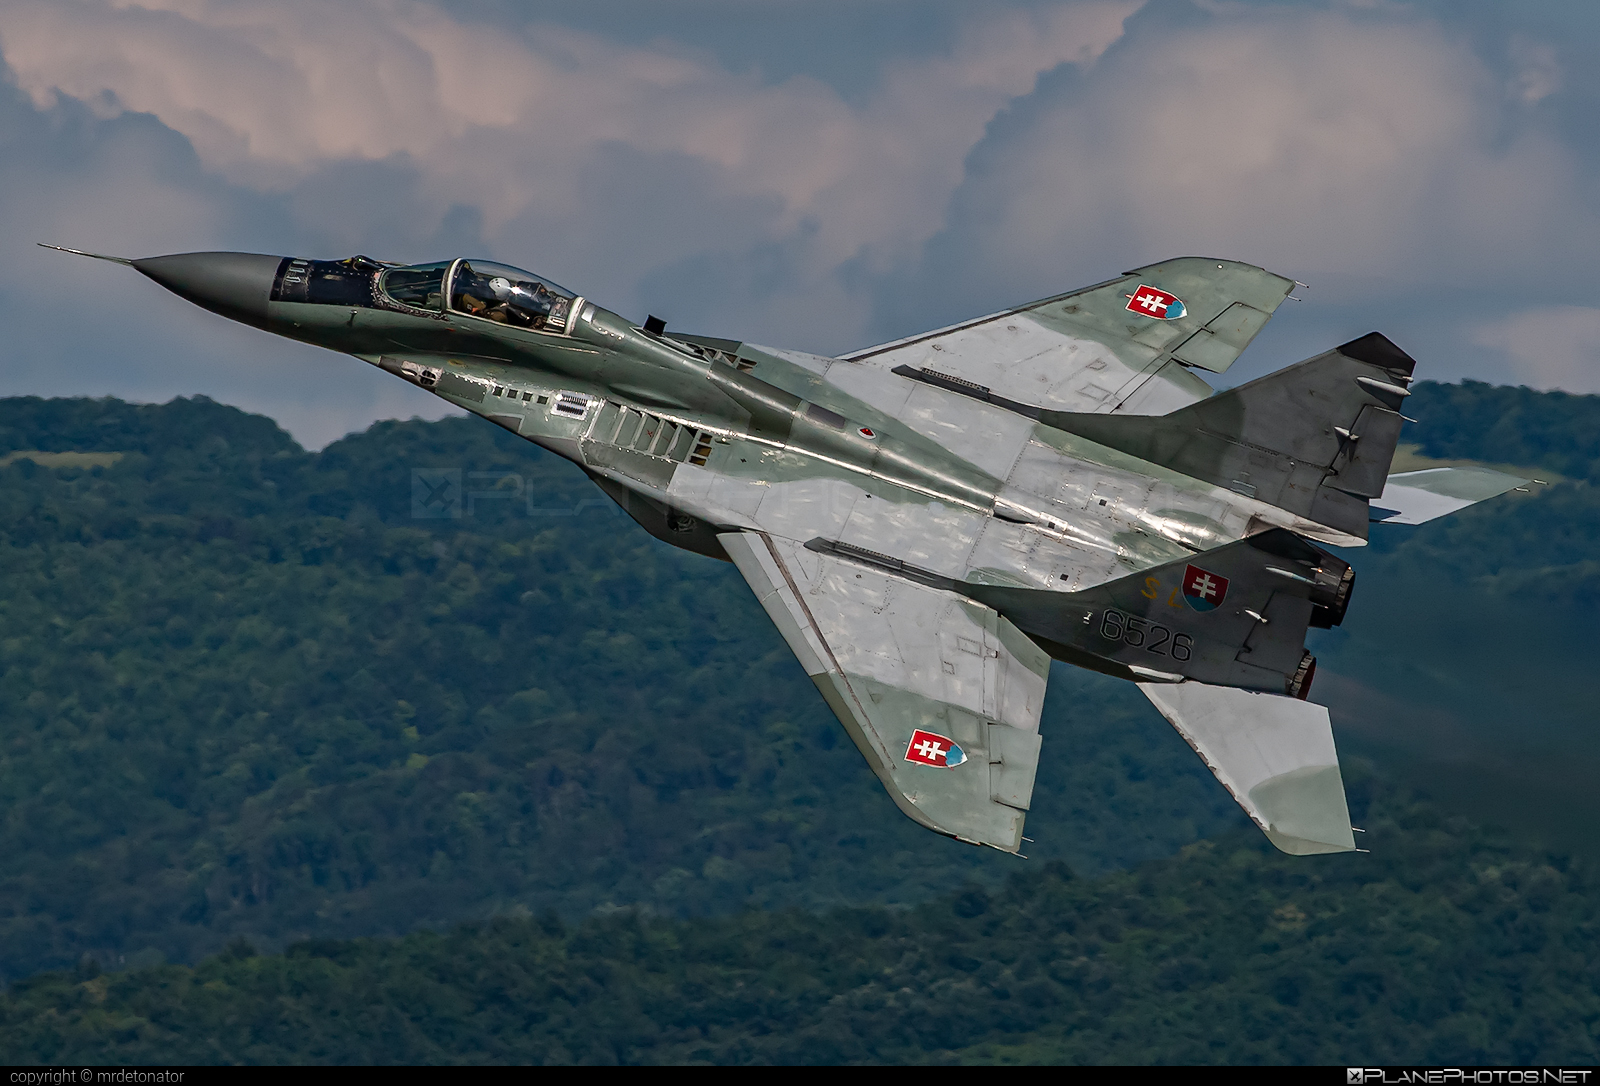 Mikoyan-Gurevich MiG-29AS - 6526 operated by Vzdušné sily OS SR (Slovak Air Force) #mig #mig29 #mig29as #mikoyangurevich #nld2007 #slovakairforce #vzdusnesilyossr